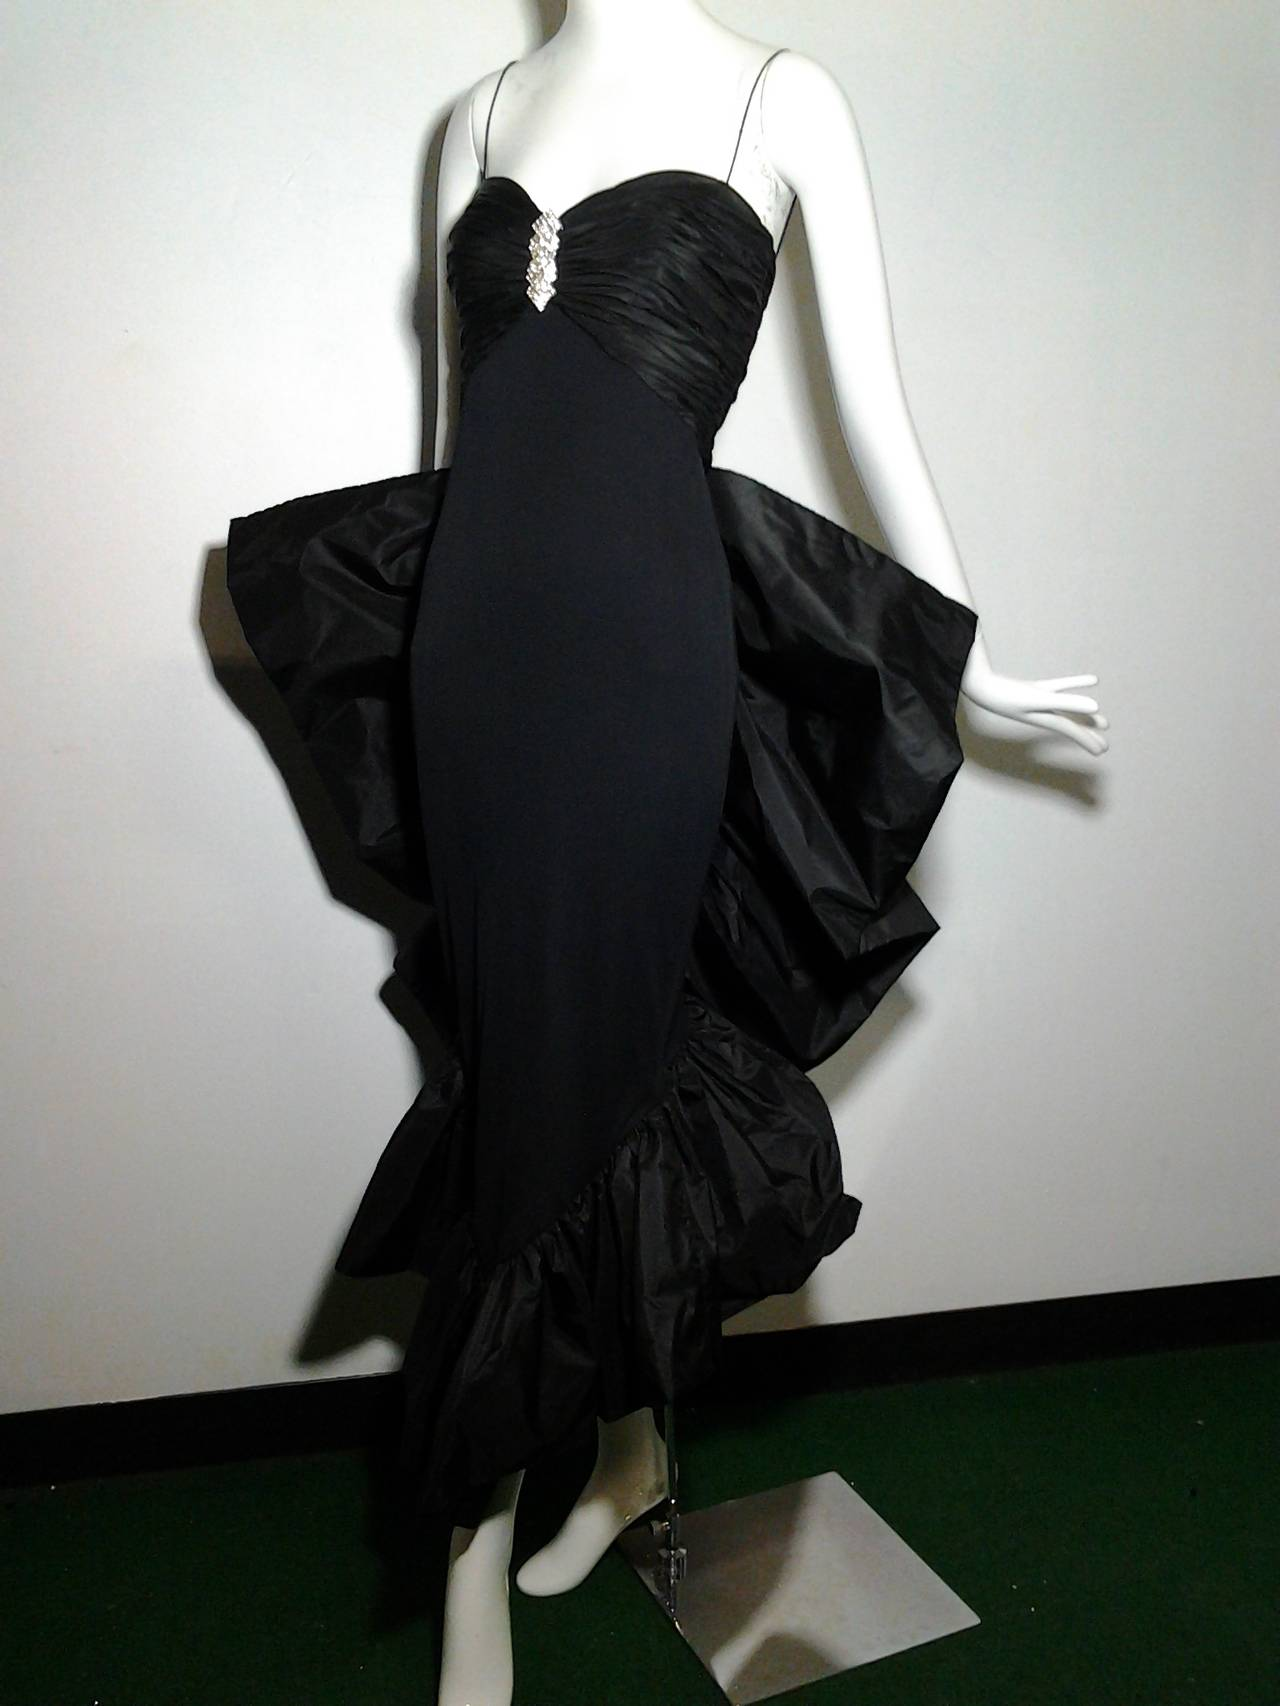 1980s Jill Richards Dramatic Black Fan-Tail Bustle Cocktail Dress For Sale 2